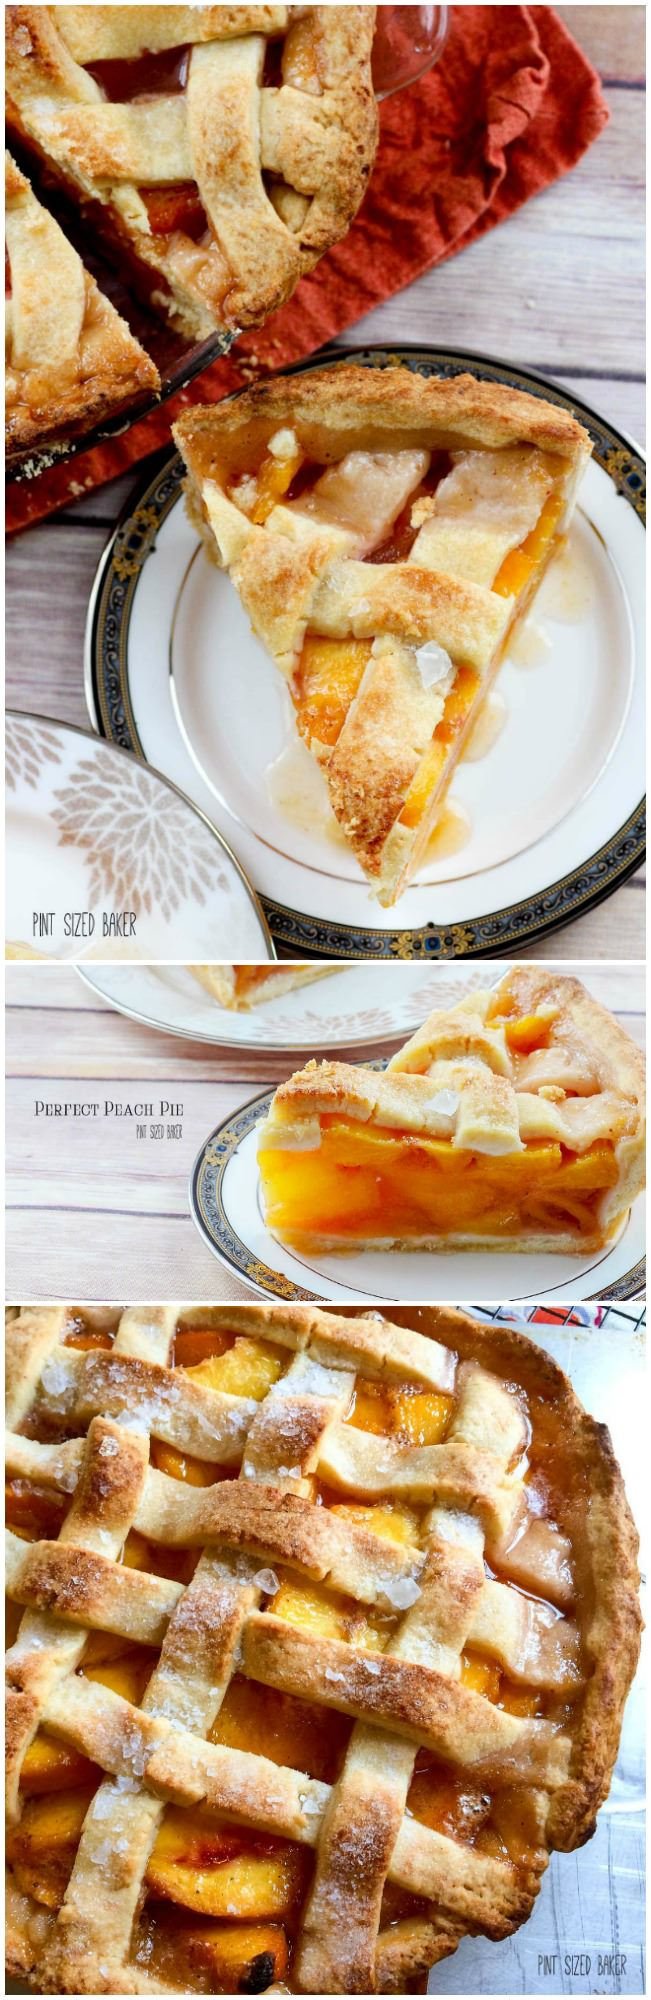 Perfect Peach Pie Recipe. Grab some seasonal fresh peaches and bake a pie. This recipe is the best!